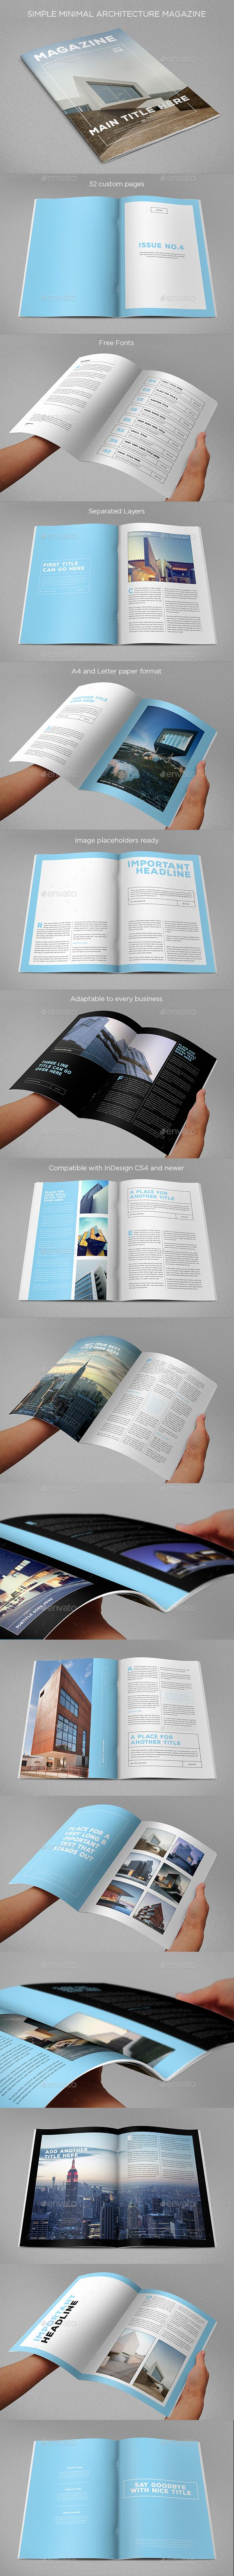 Simple Minimal Architecture Magazine — InDesign INDD #flexible #clean • Available here → https://graphicriver.net/item/simple-minimal-architecture-magazine/14459946?ref=pxcr